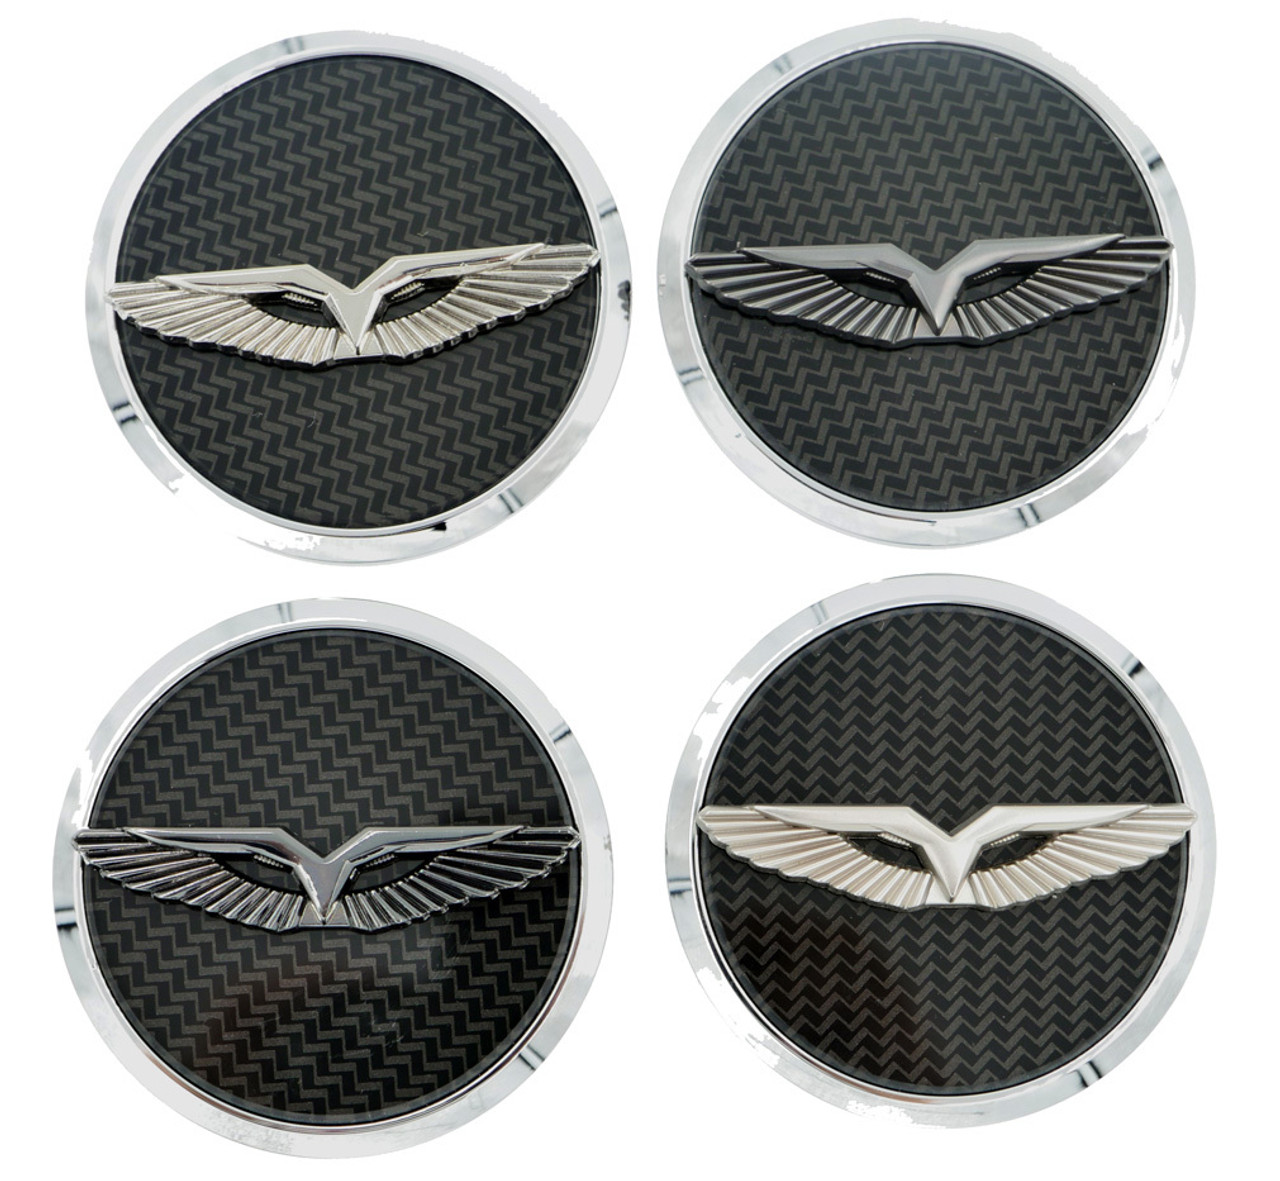 ANZU-T Wheel Cap Emblem Set 4pc Set (5 Colors)